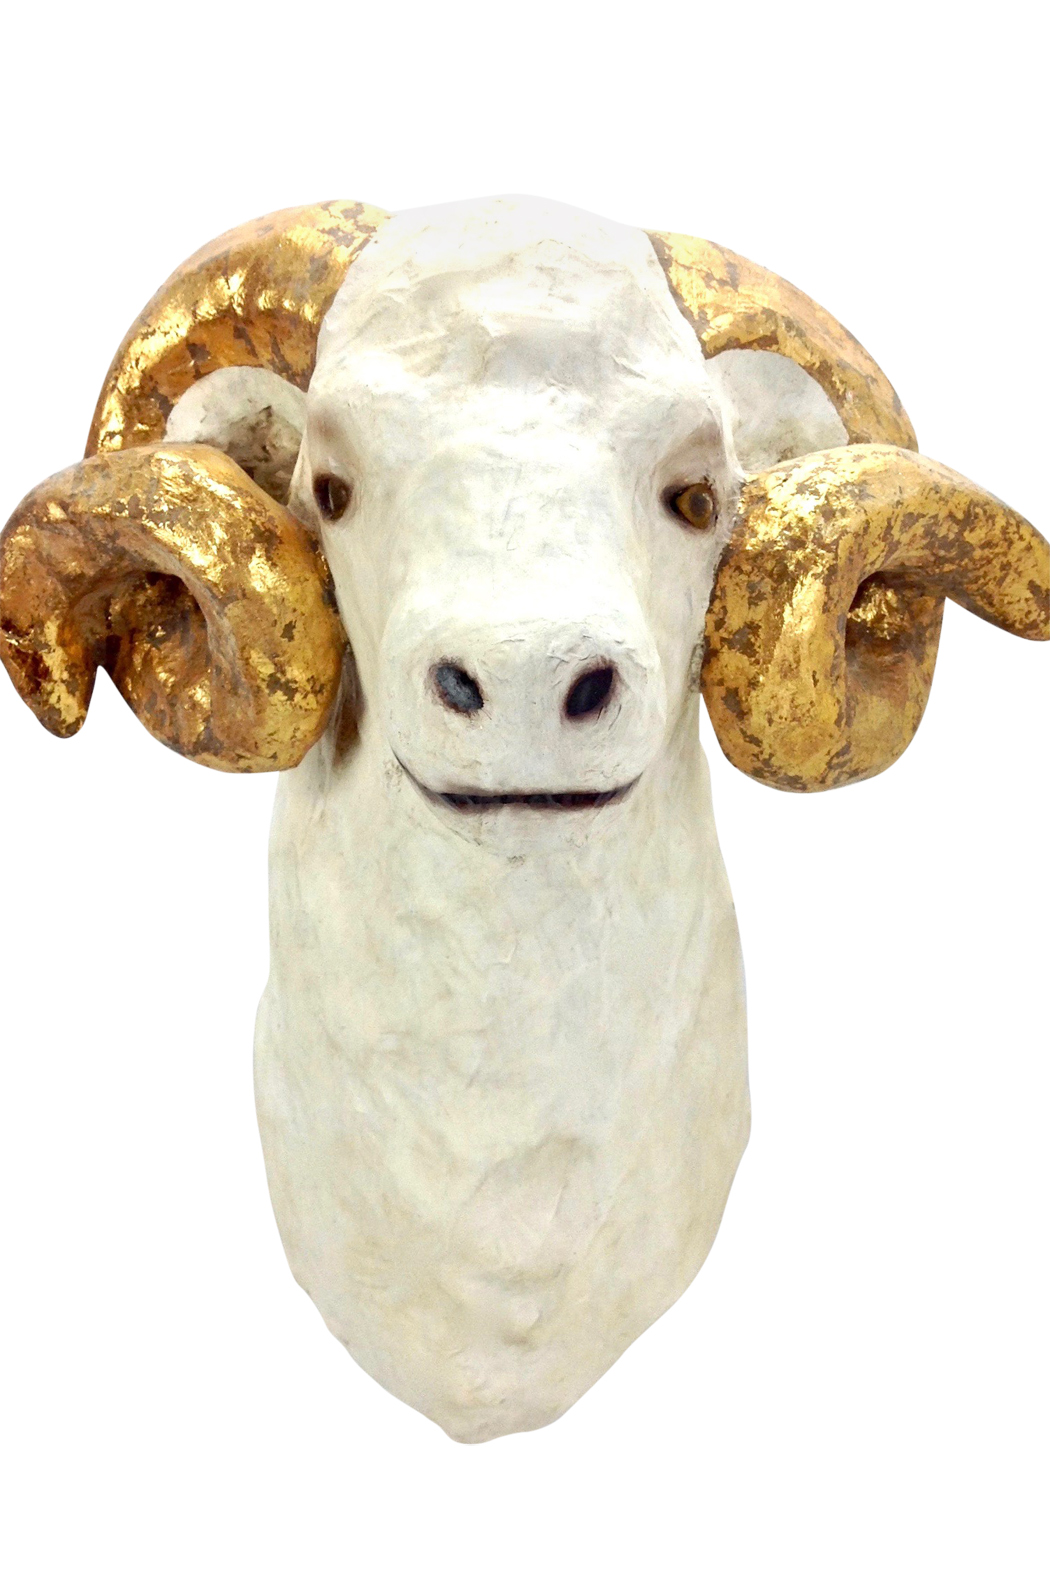 Ram trophy with gold leafed horns go home modern for Modern home decor gifts